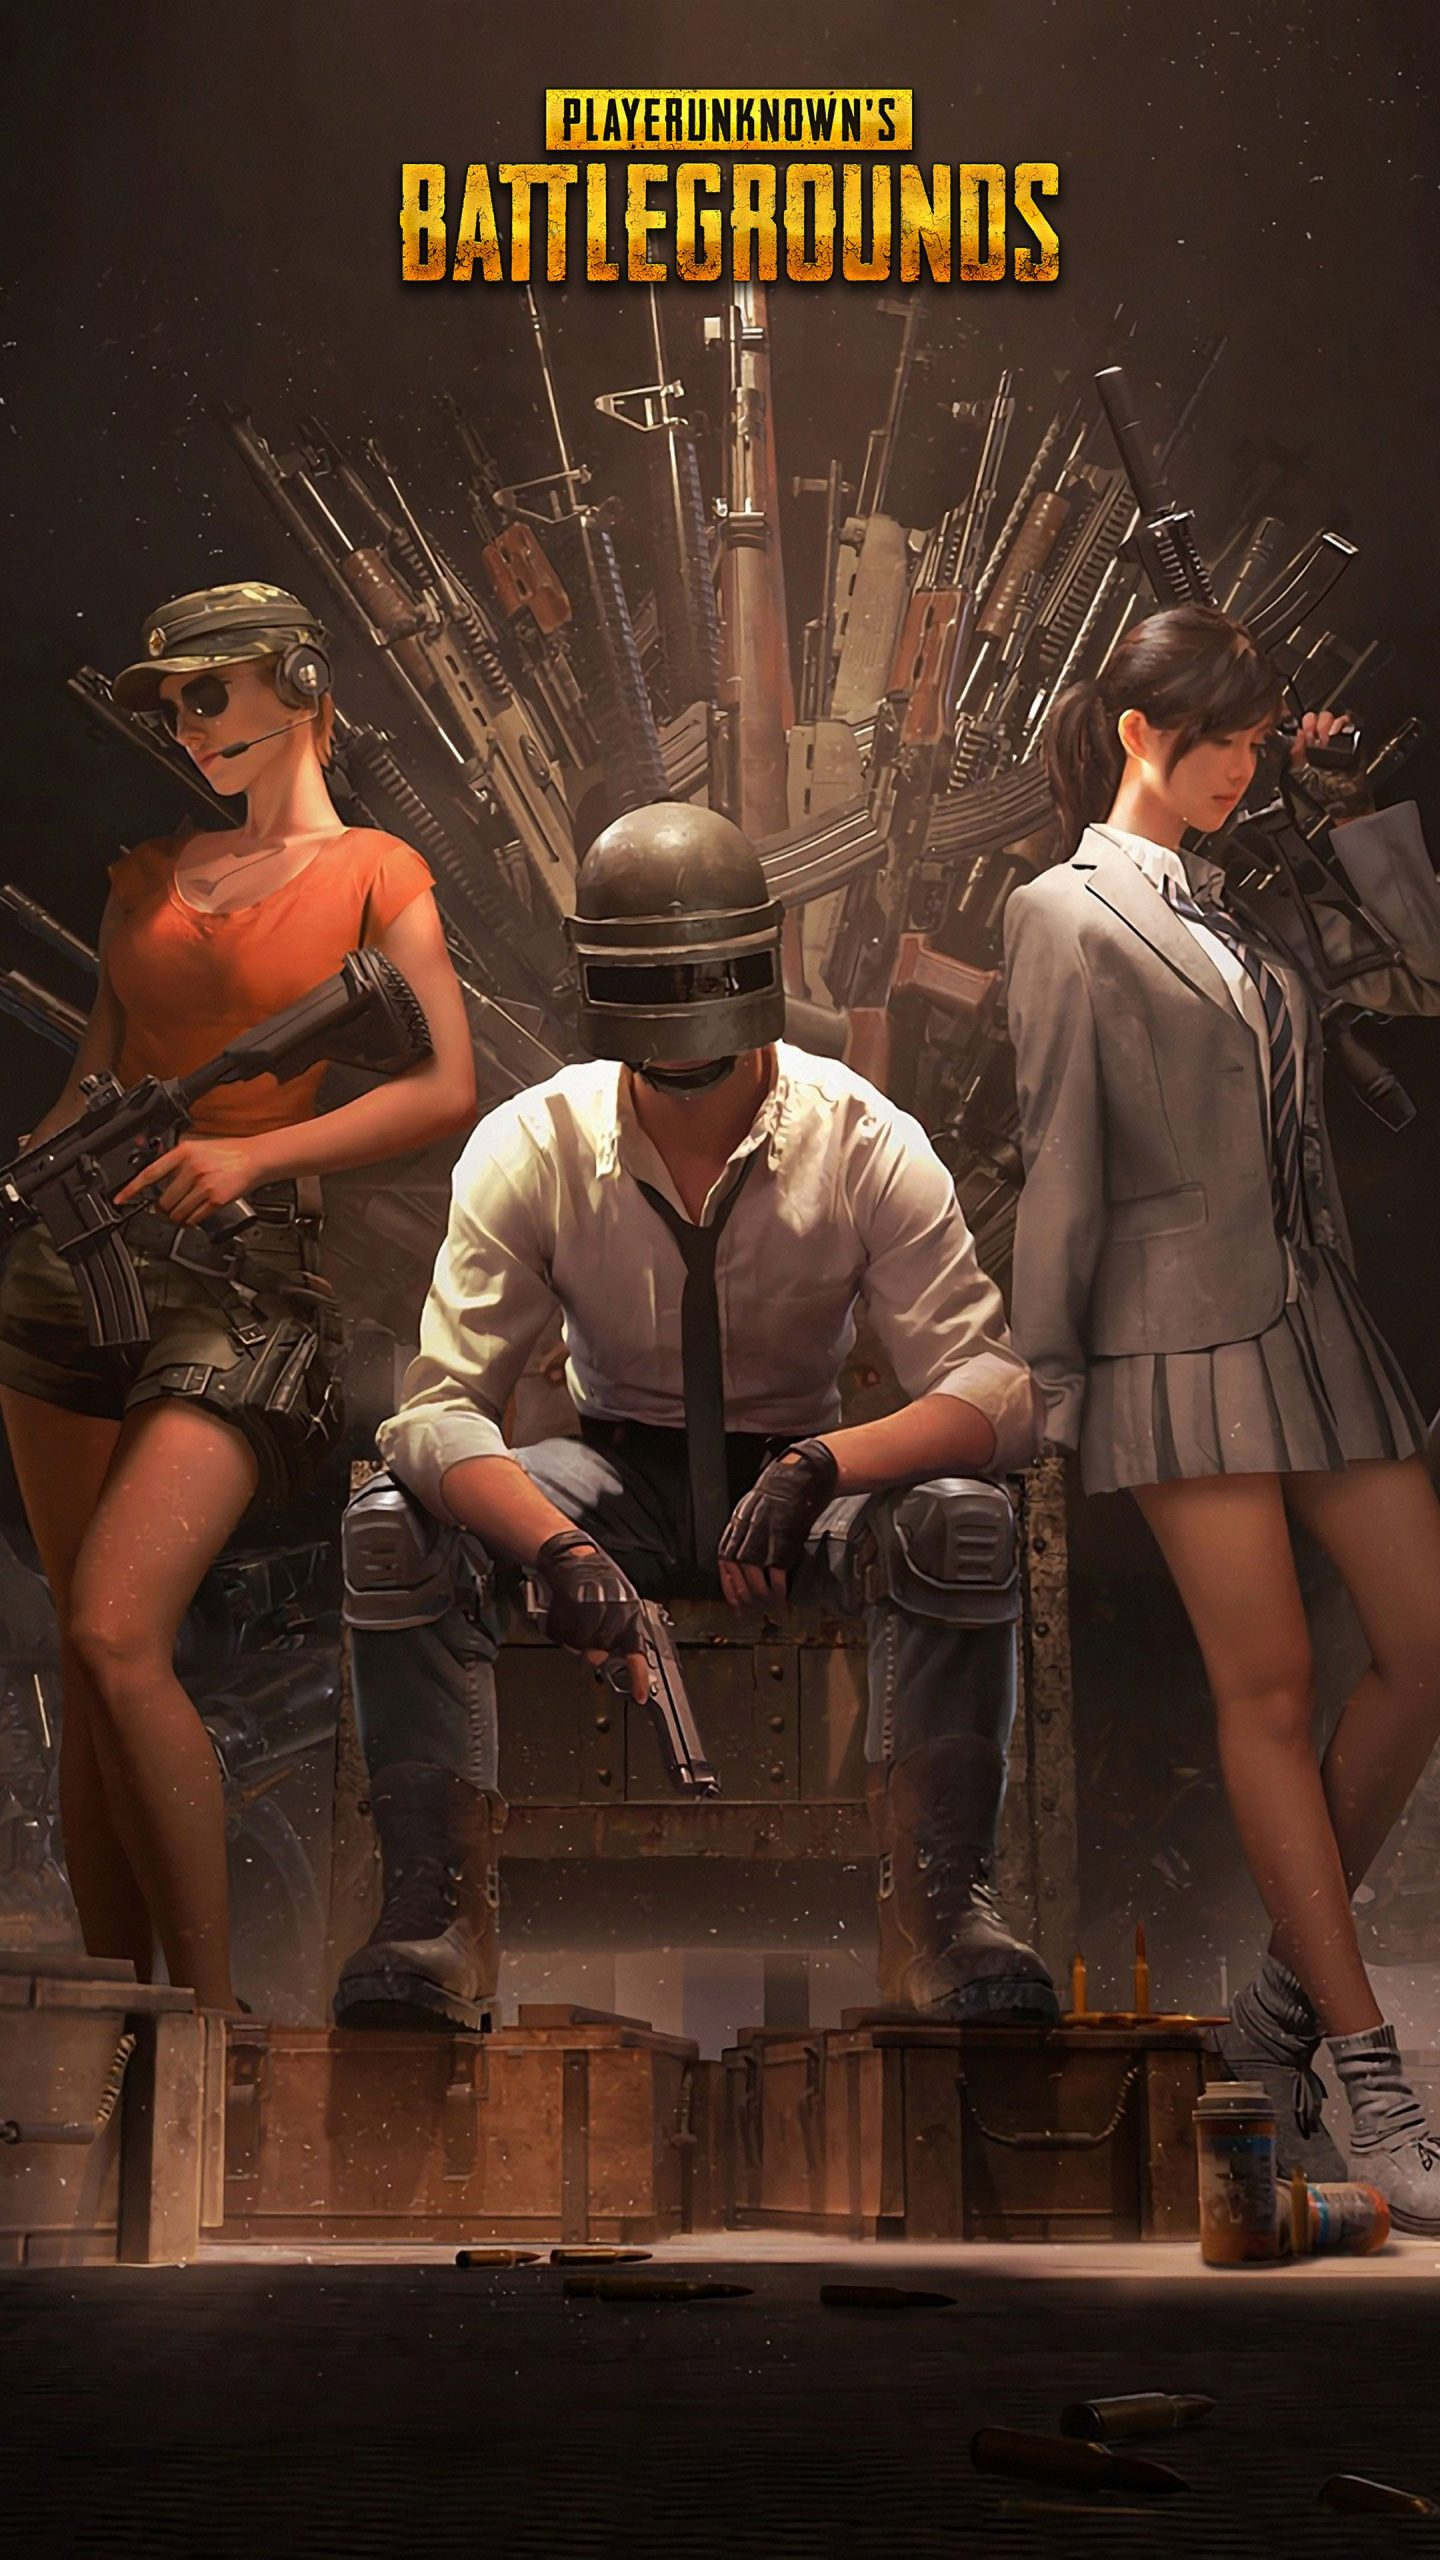 Player Unknowns Battlegrounds (PUBG) CD Key PC Game Free Download